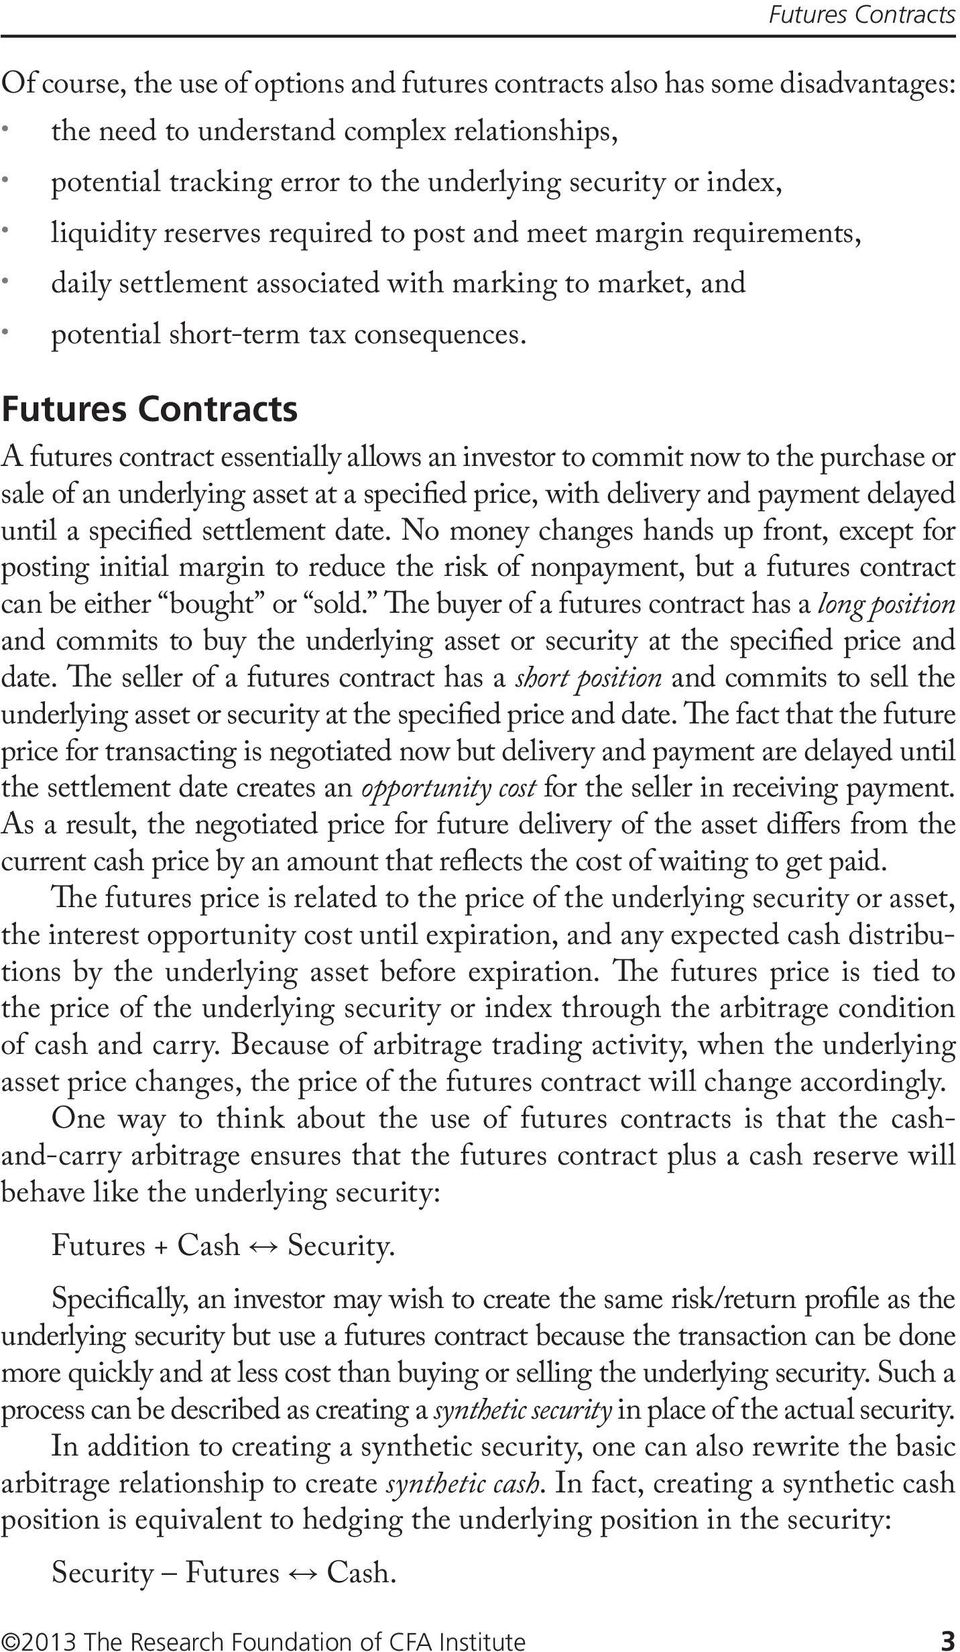 Futures Contracts A futures contract essentially allows an investor to commit now to the purchase or sale of an underlying asset at a specified price, with delivery and payment delayed until a